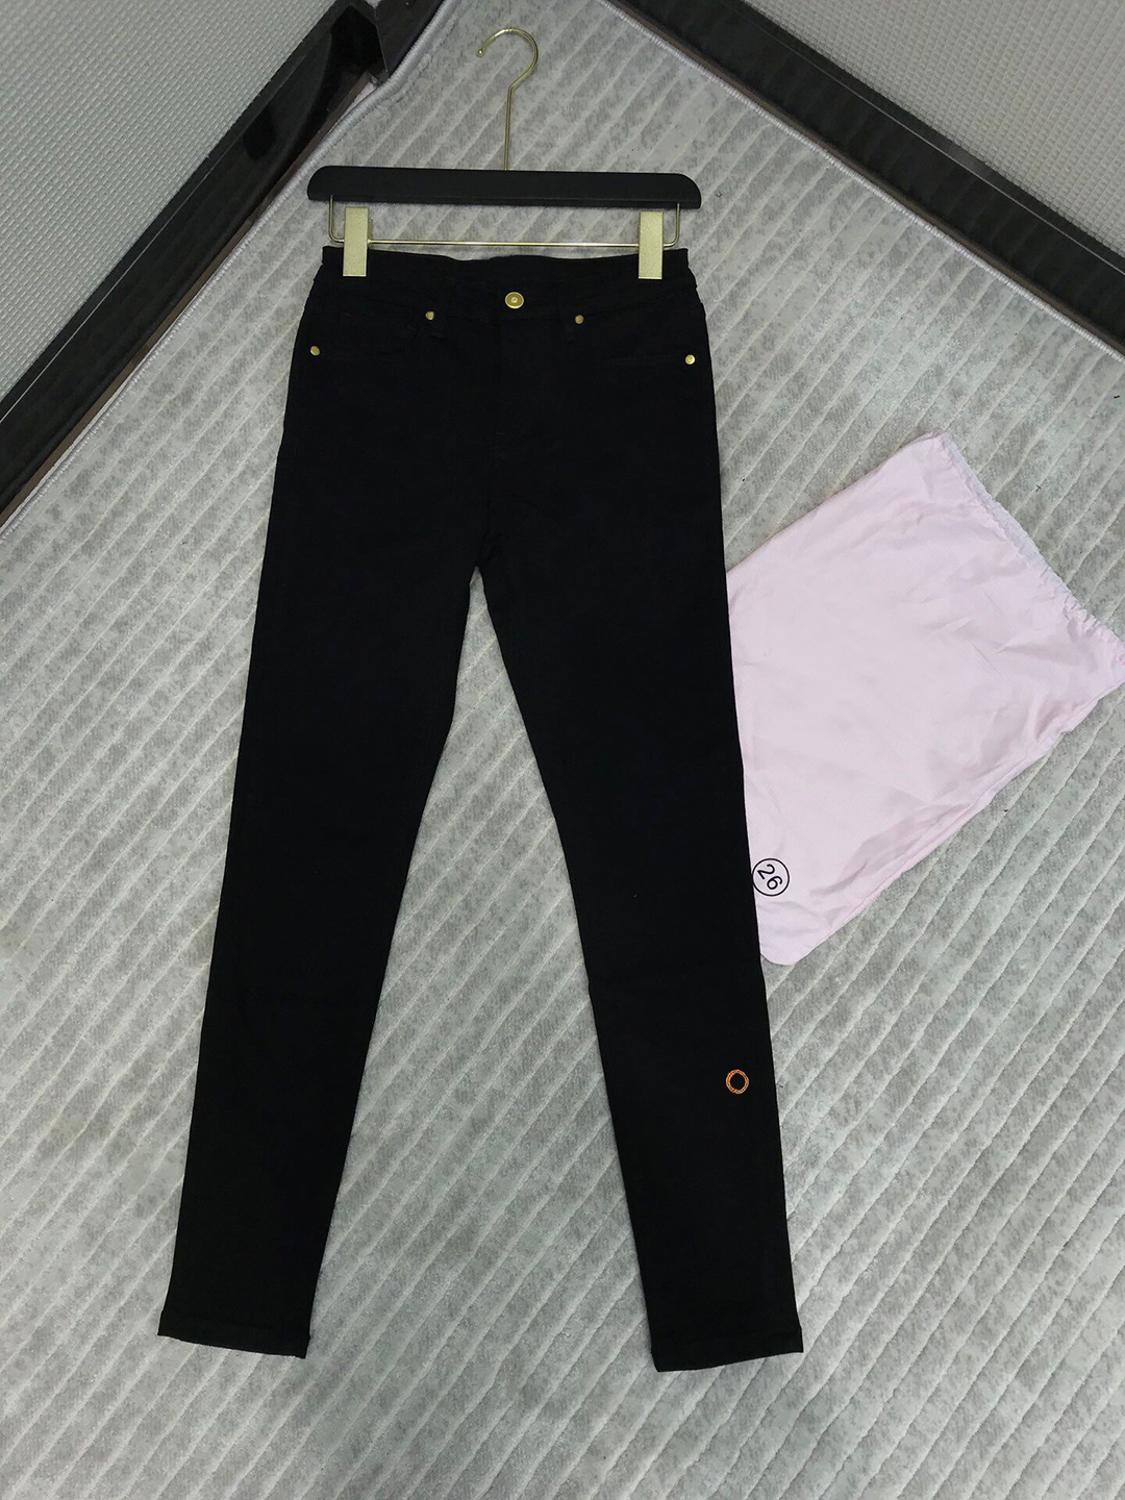 Pencil Jeans Trousers Embroidery Skinny Black High-Waist Cotton Fashion Women Runway